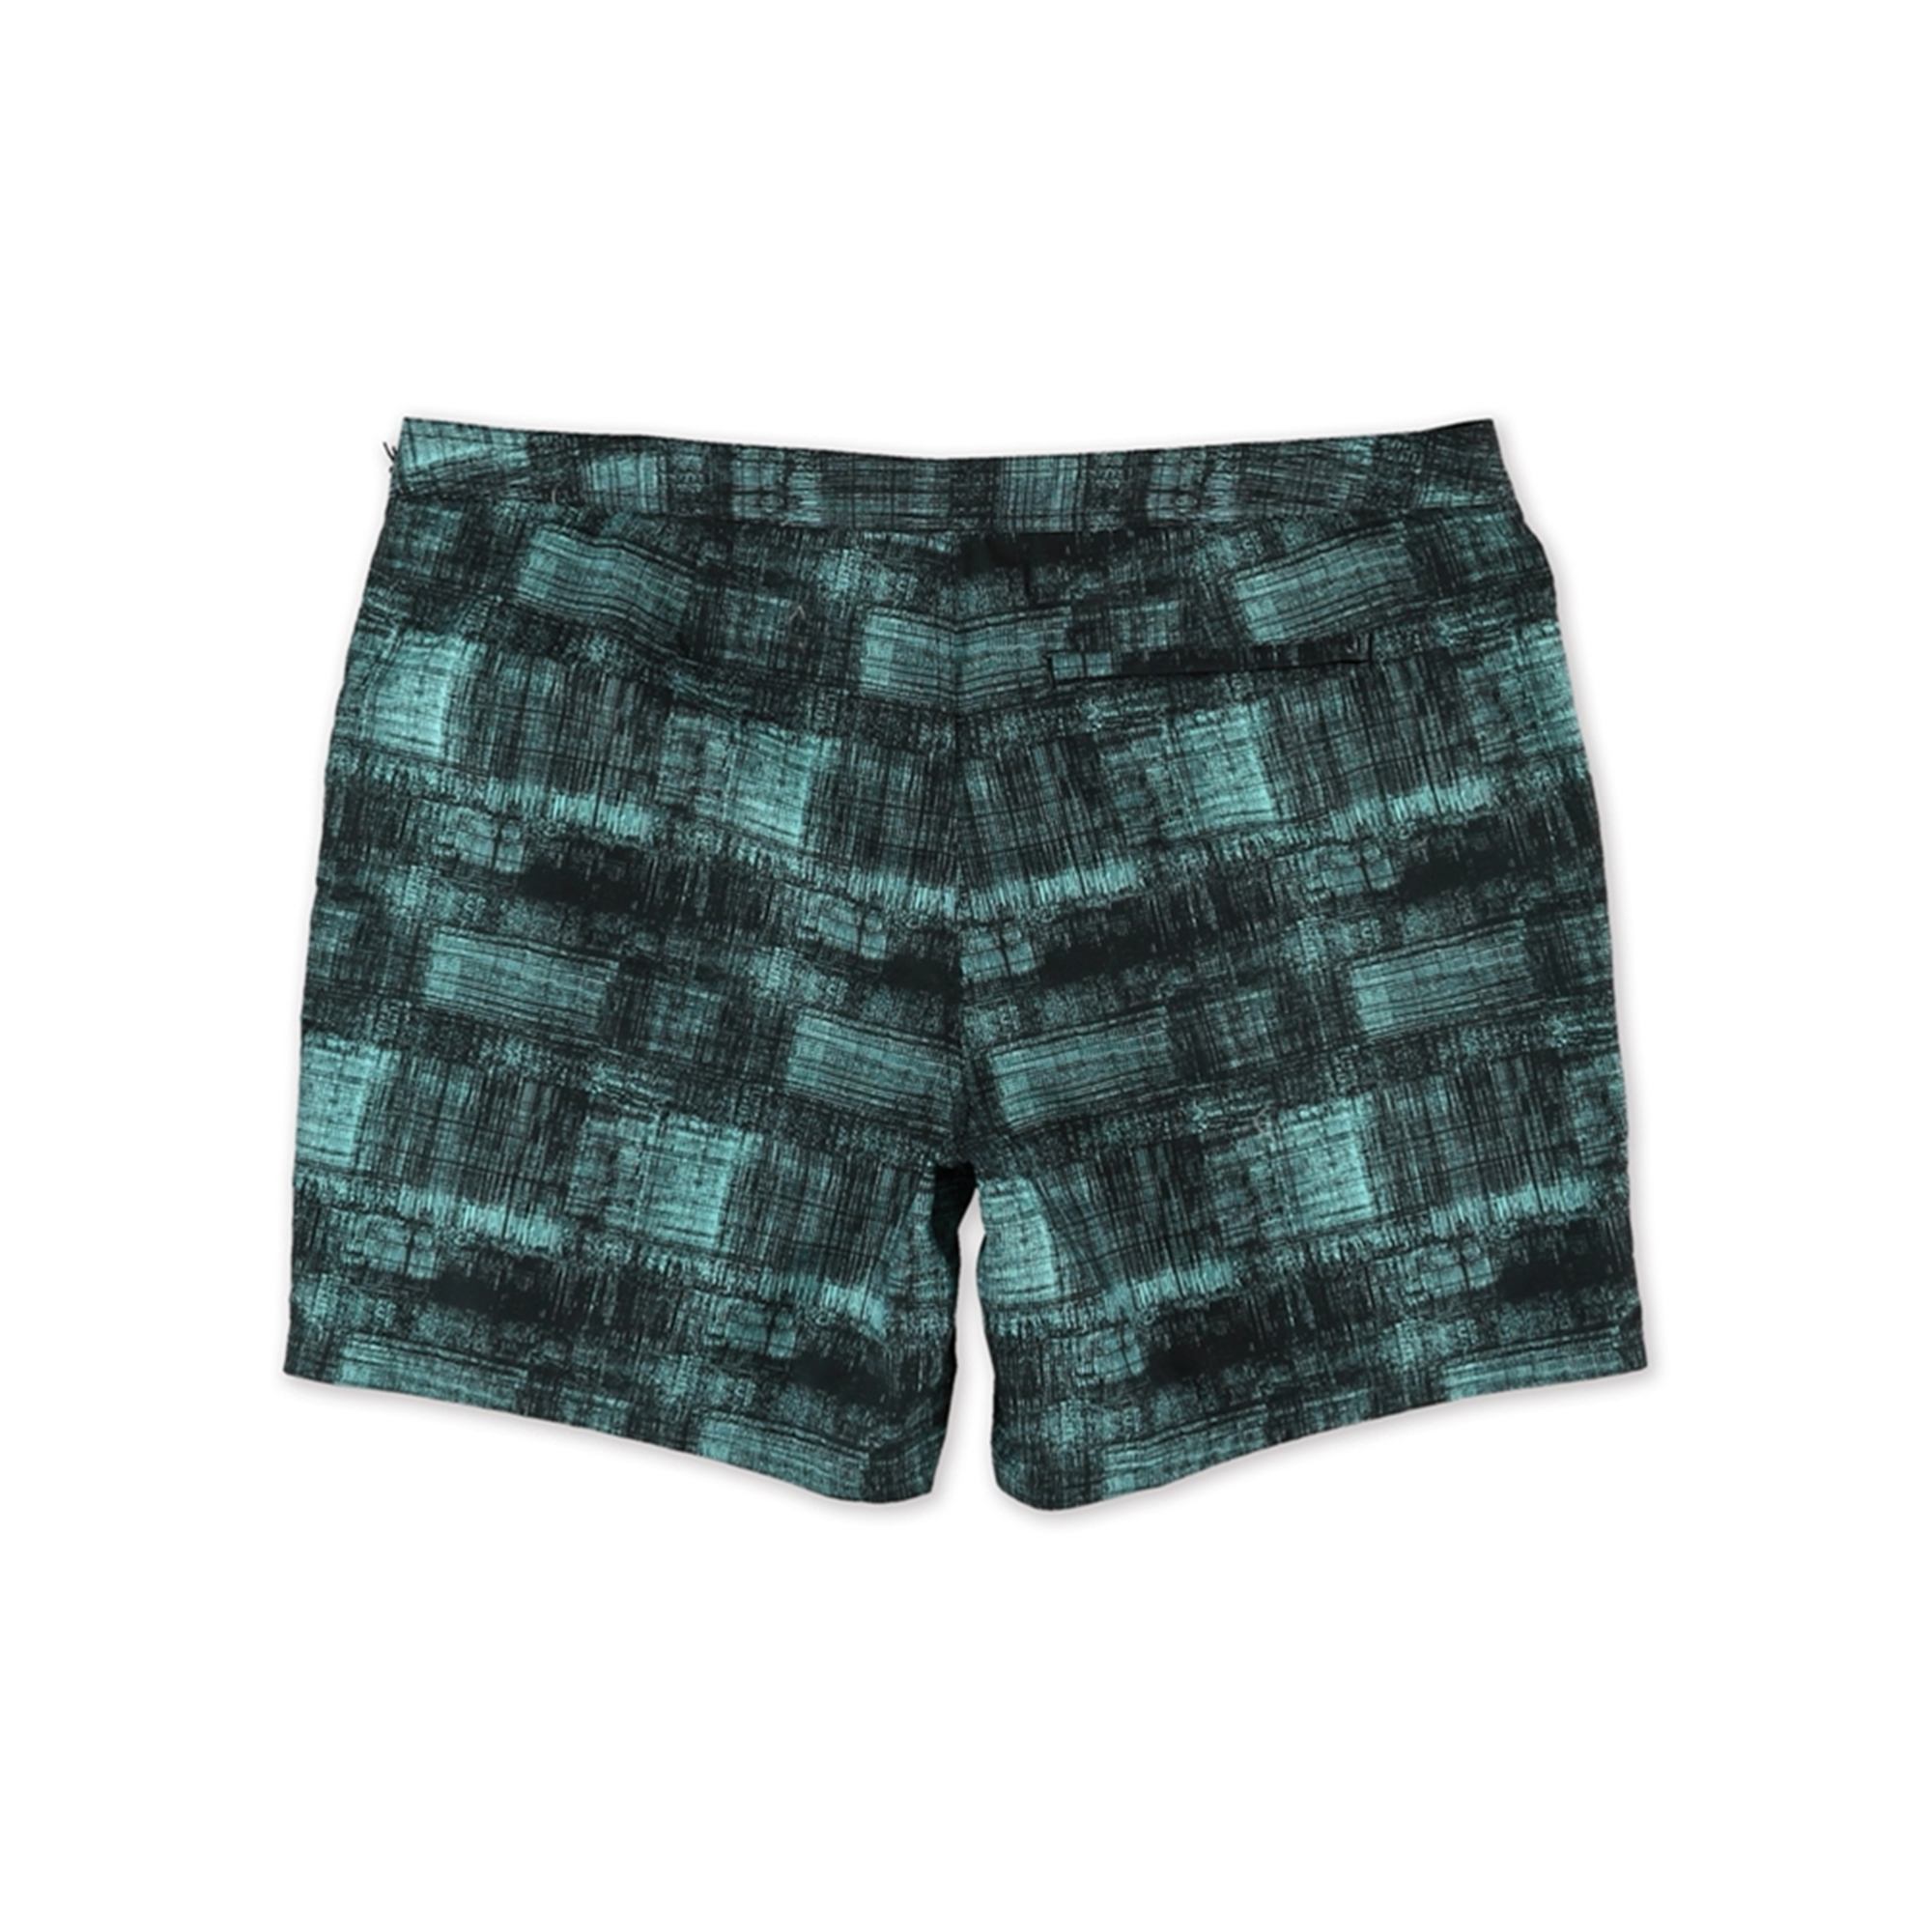 Beach Shorts Anthony Hamilton The Point It All Yoga Workout Shorts for Men Boys Outdoor Short Pants Beach Accessories